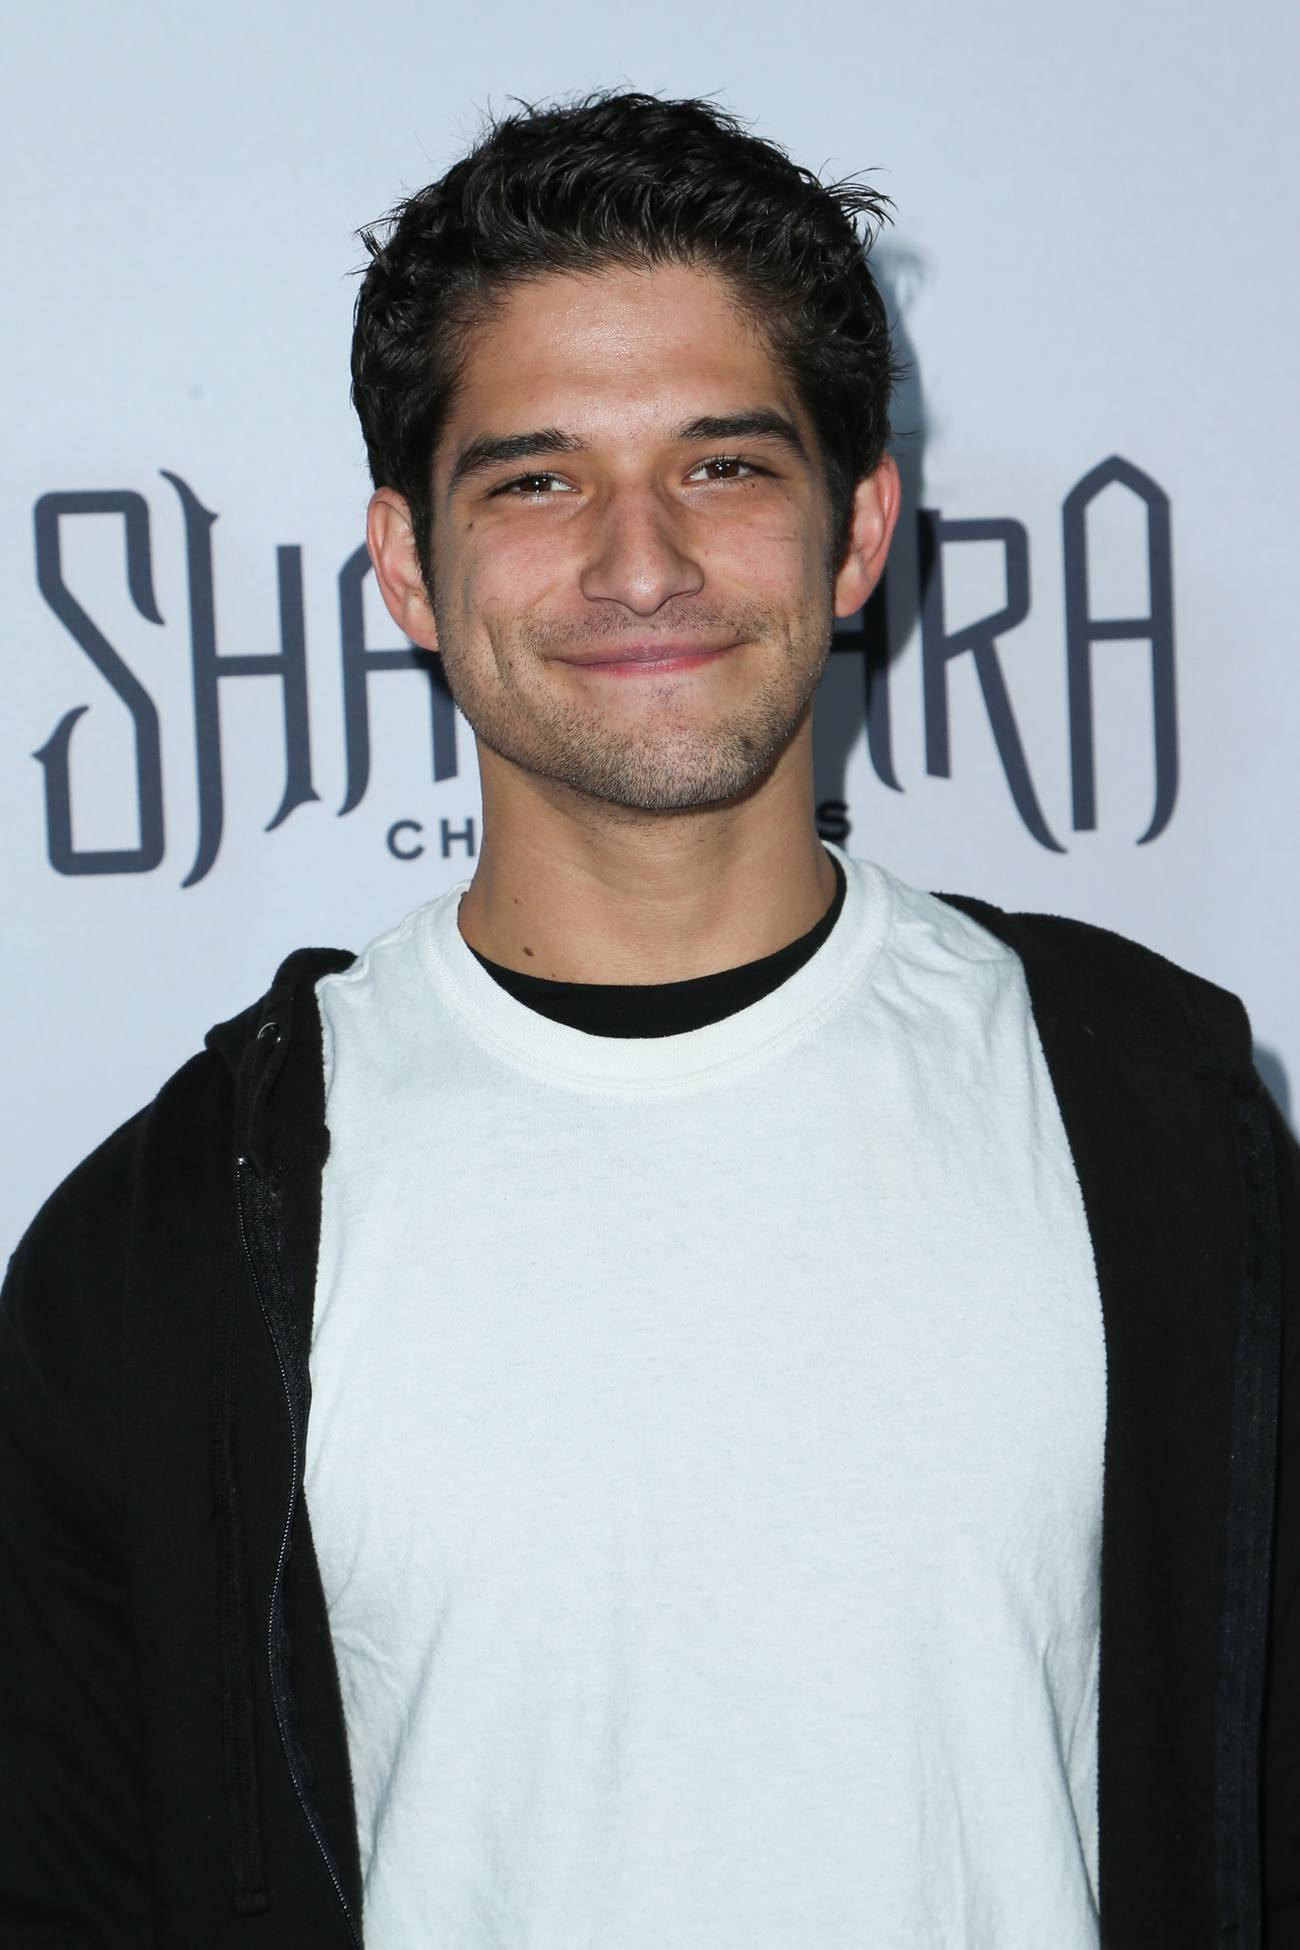 Tyler Posey arrives at The Shannara Chronicles Premiere-2